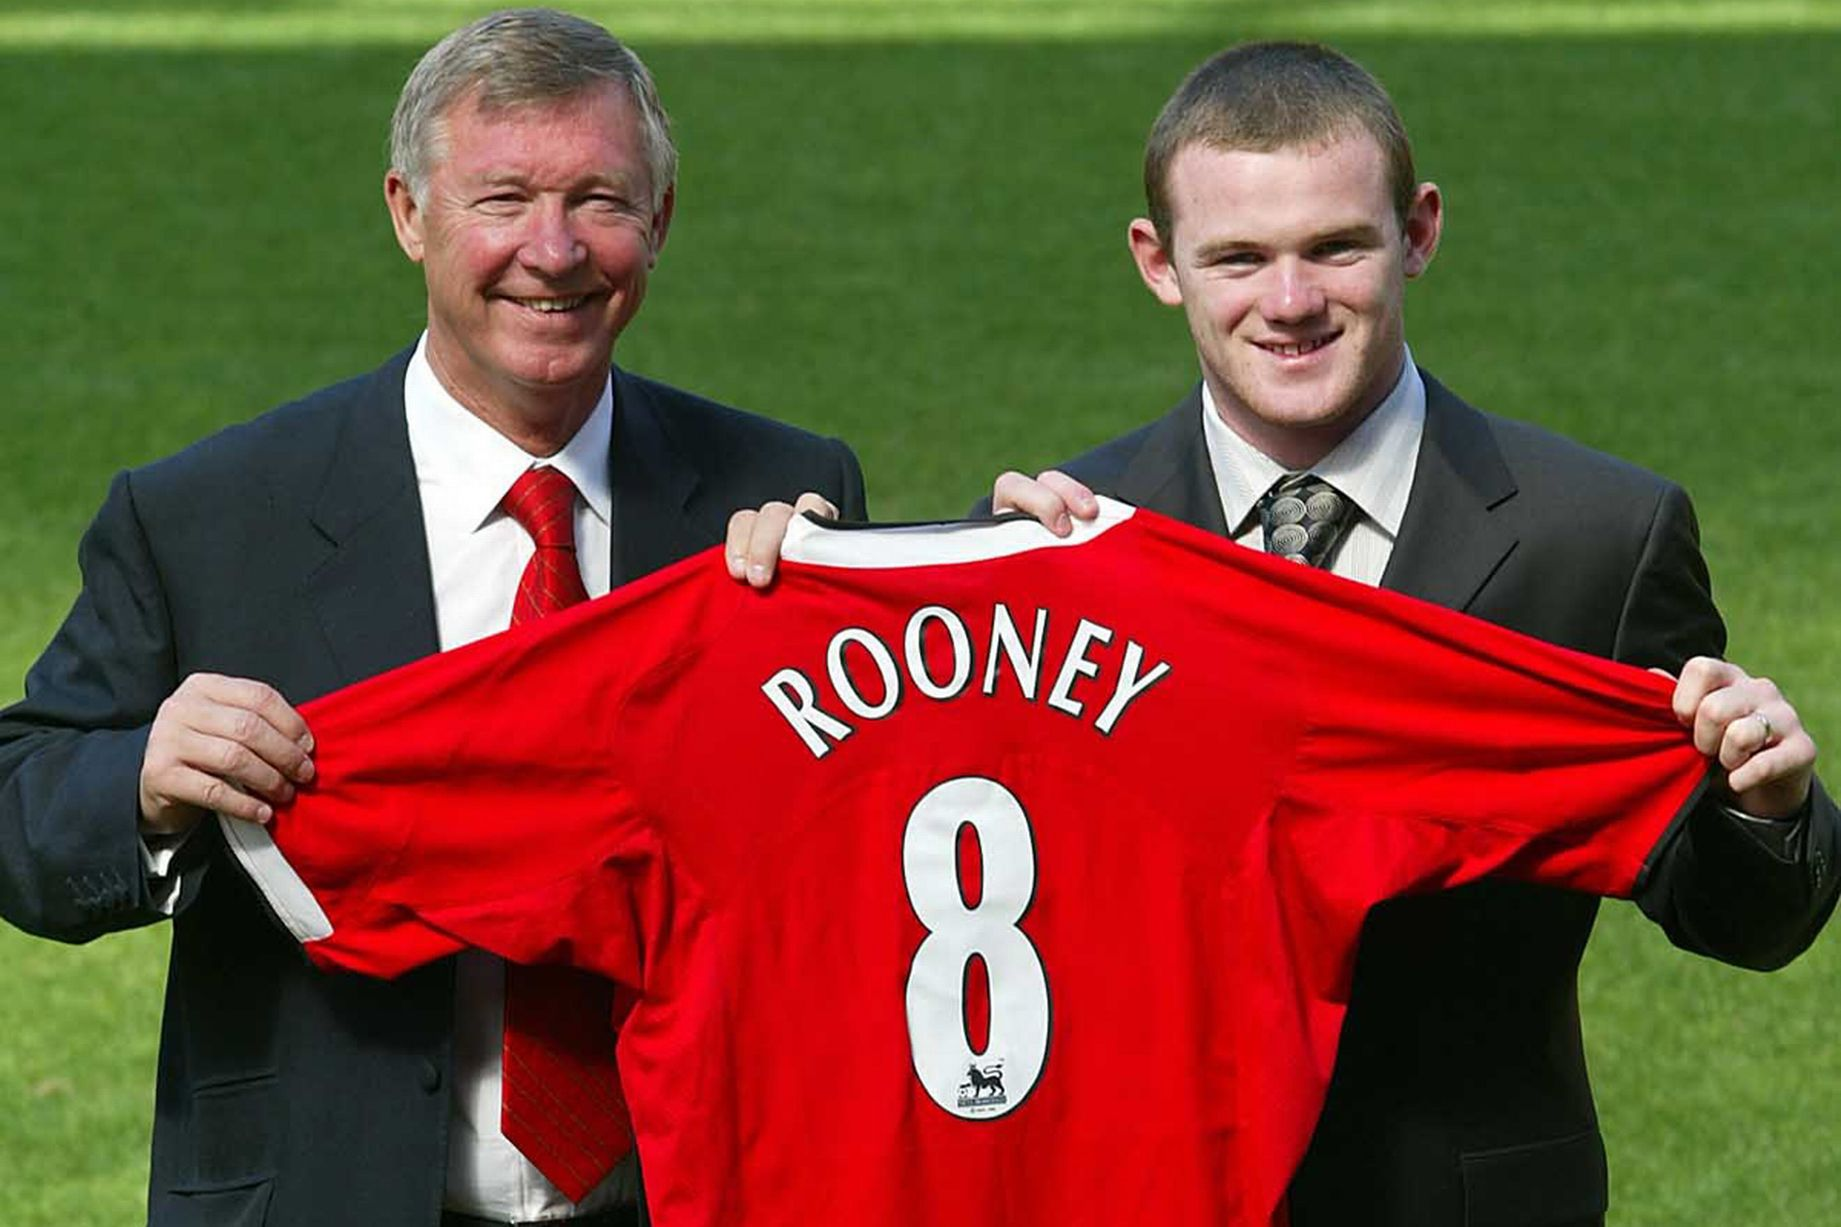 rooney-number8